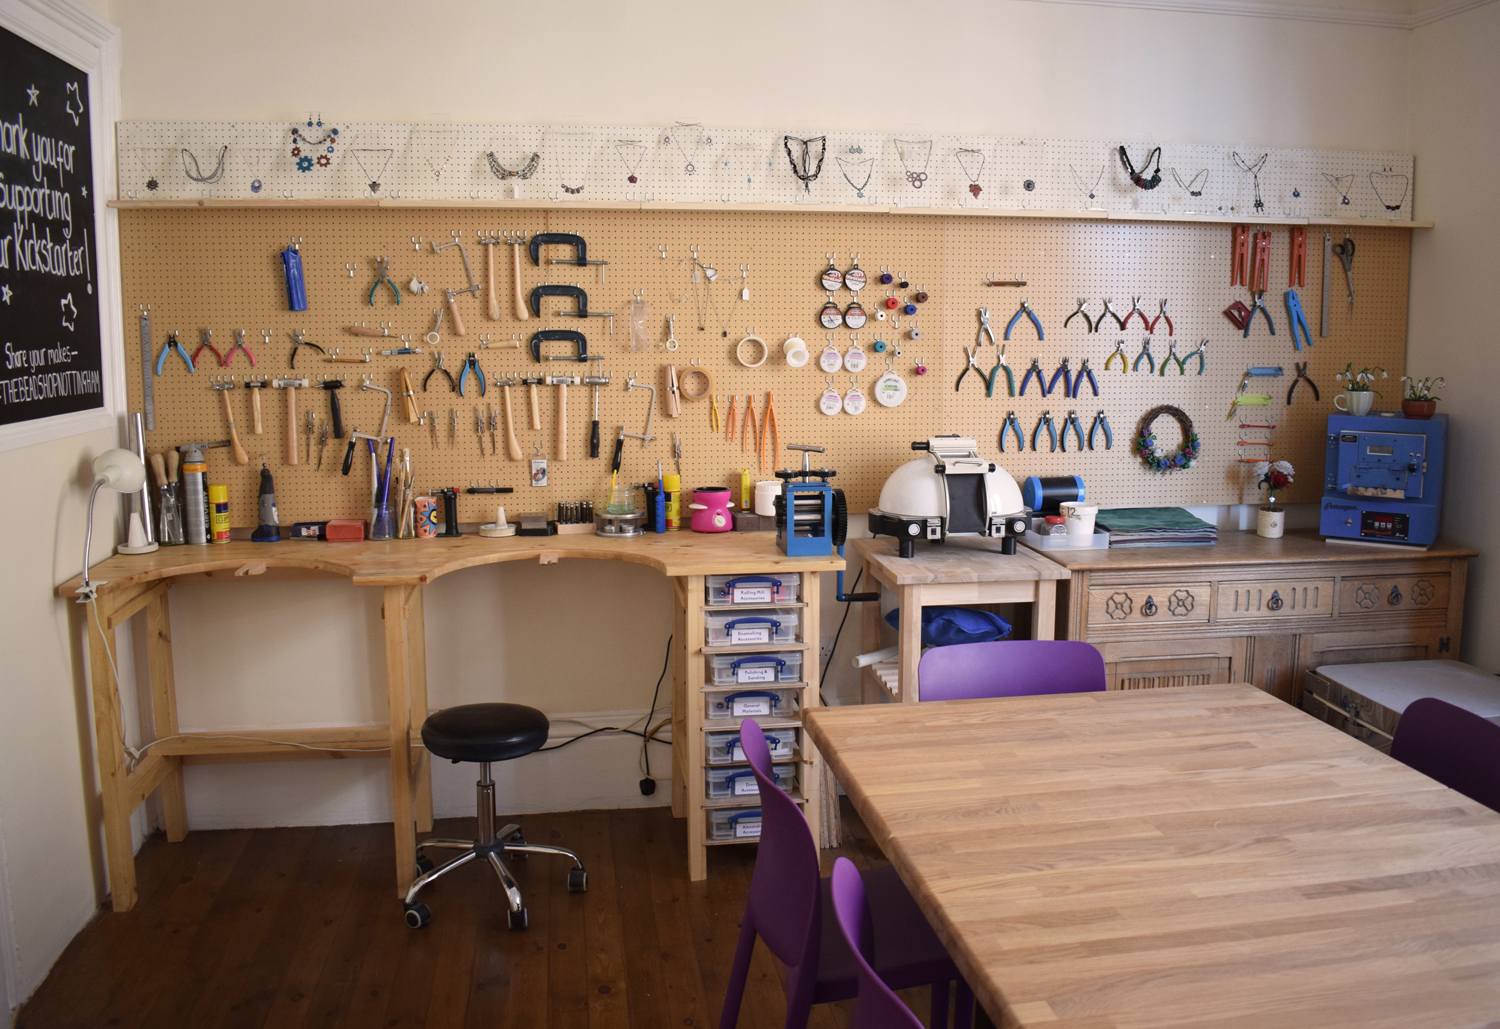 The Bead Shop's workshop area